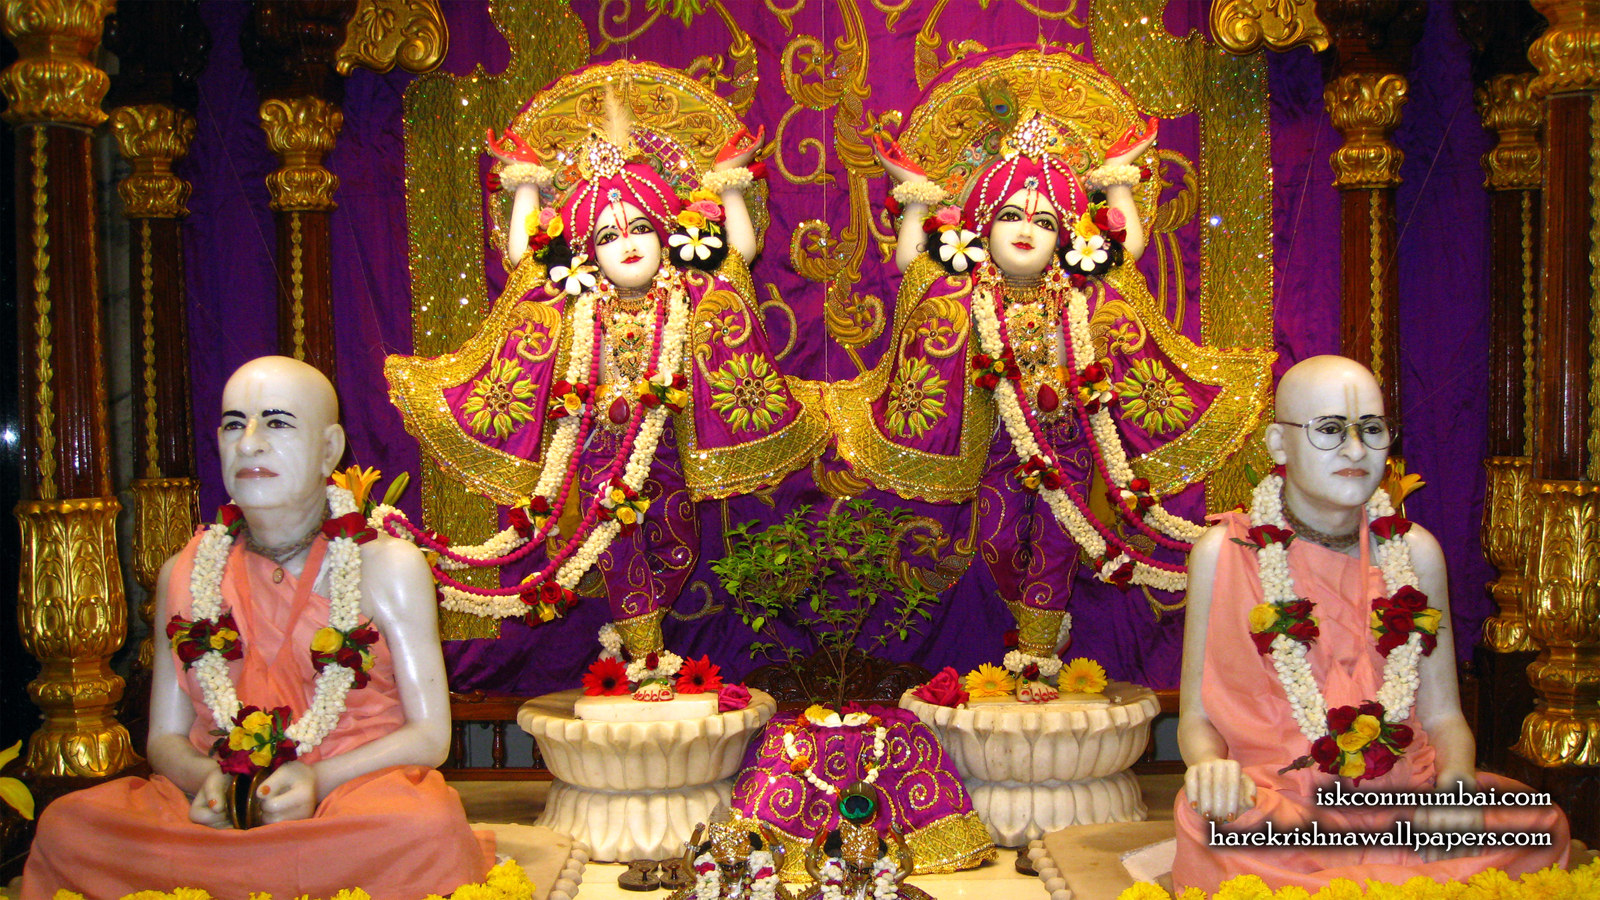 Sri Sri Gaura Nitai With Acharyas Wallpaper (016) Size 1600x900 Download